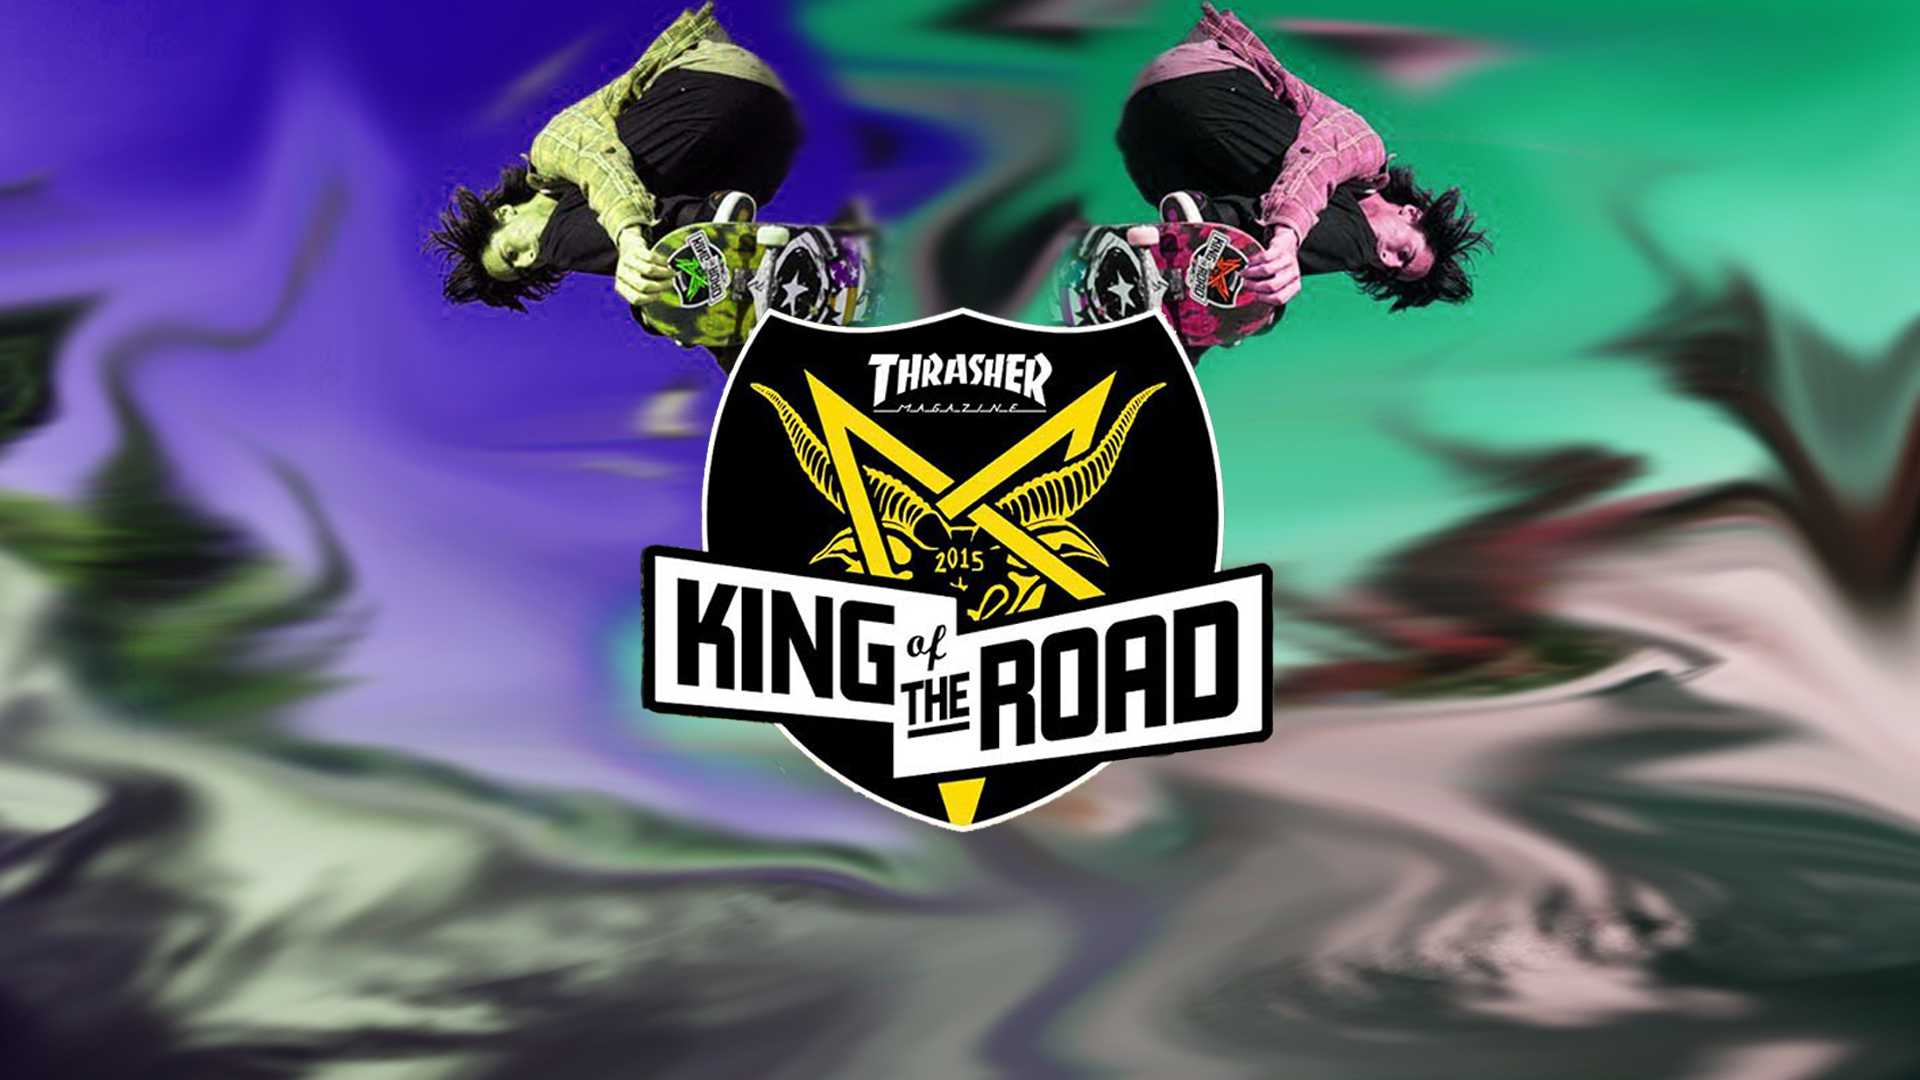 Thrasher King of the Road 2016